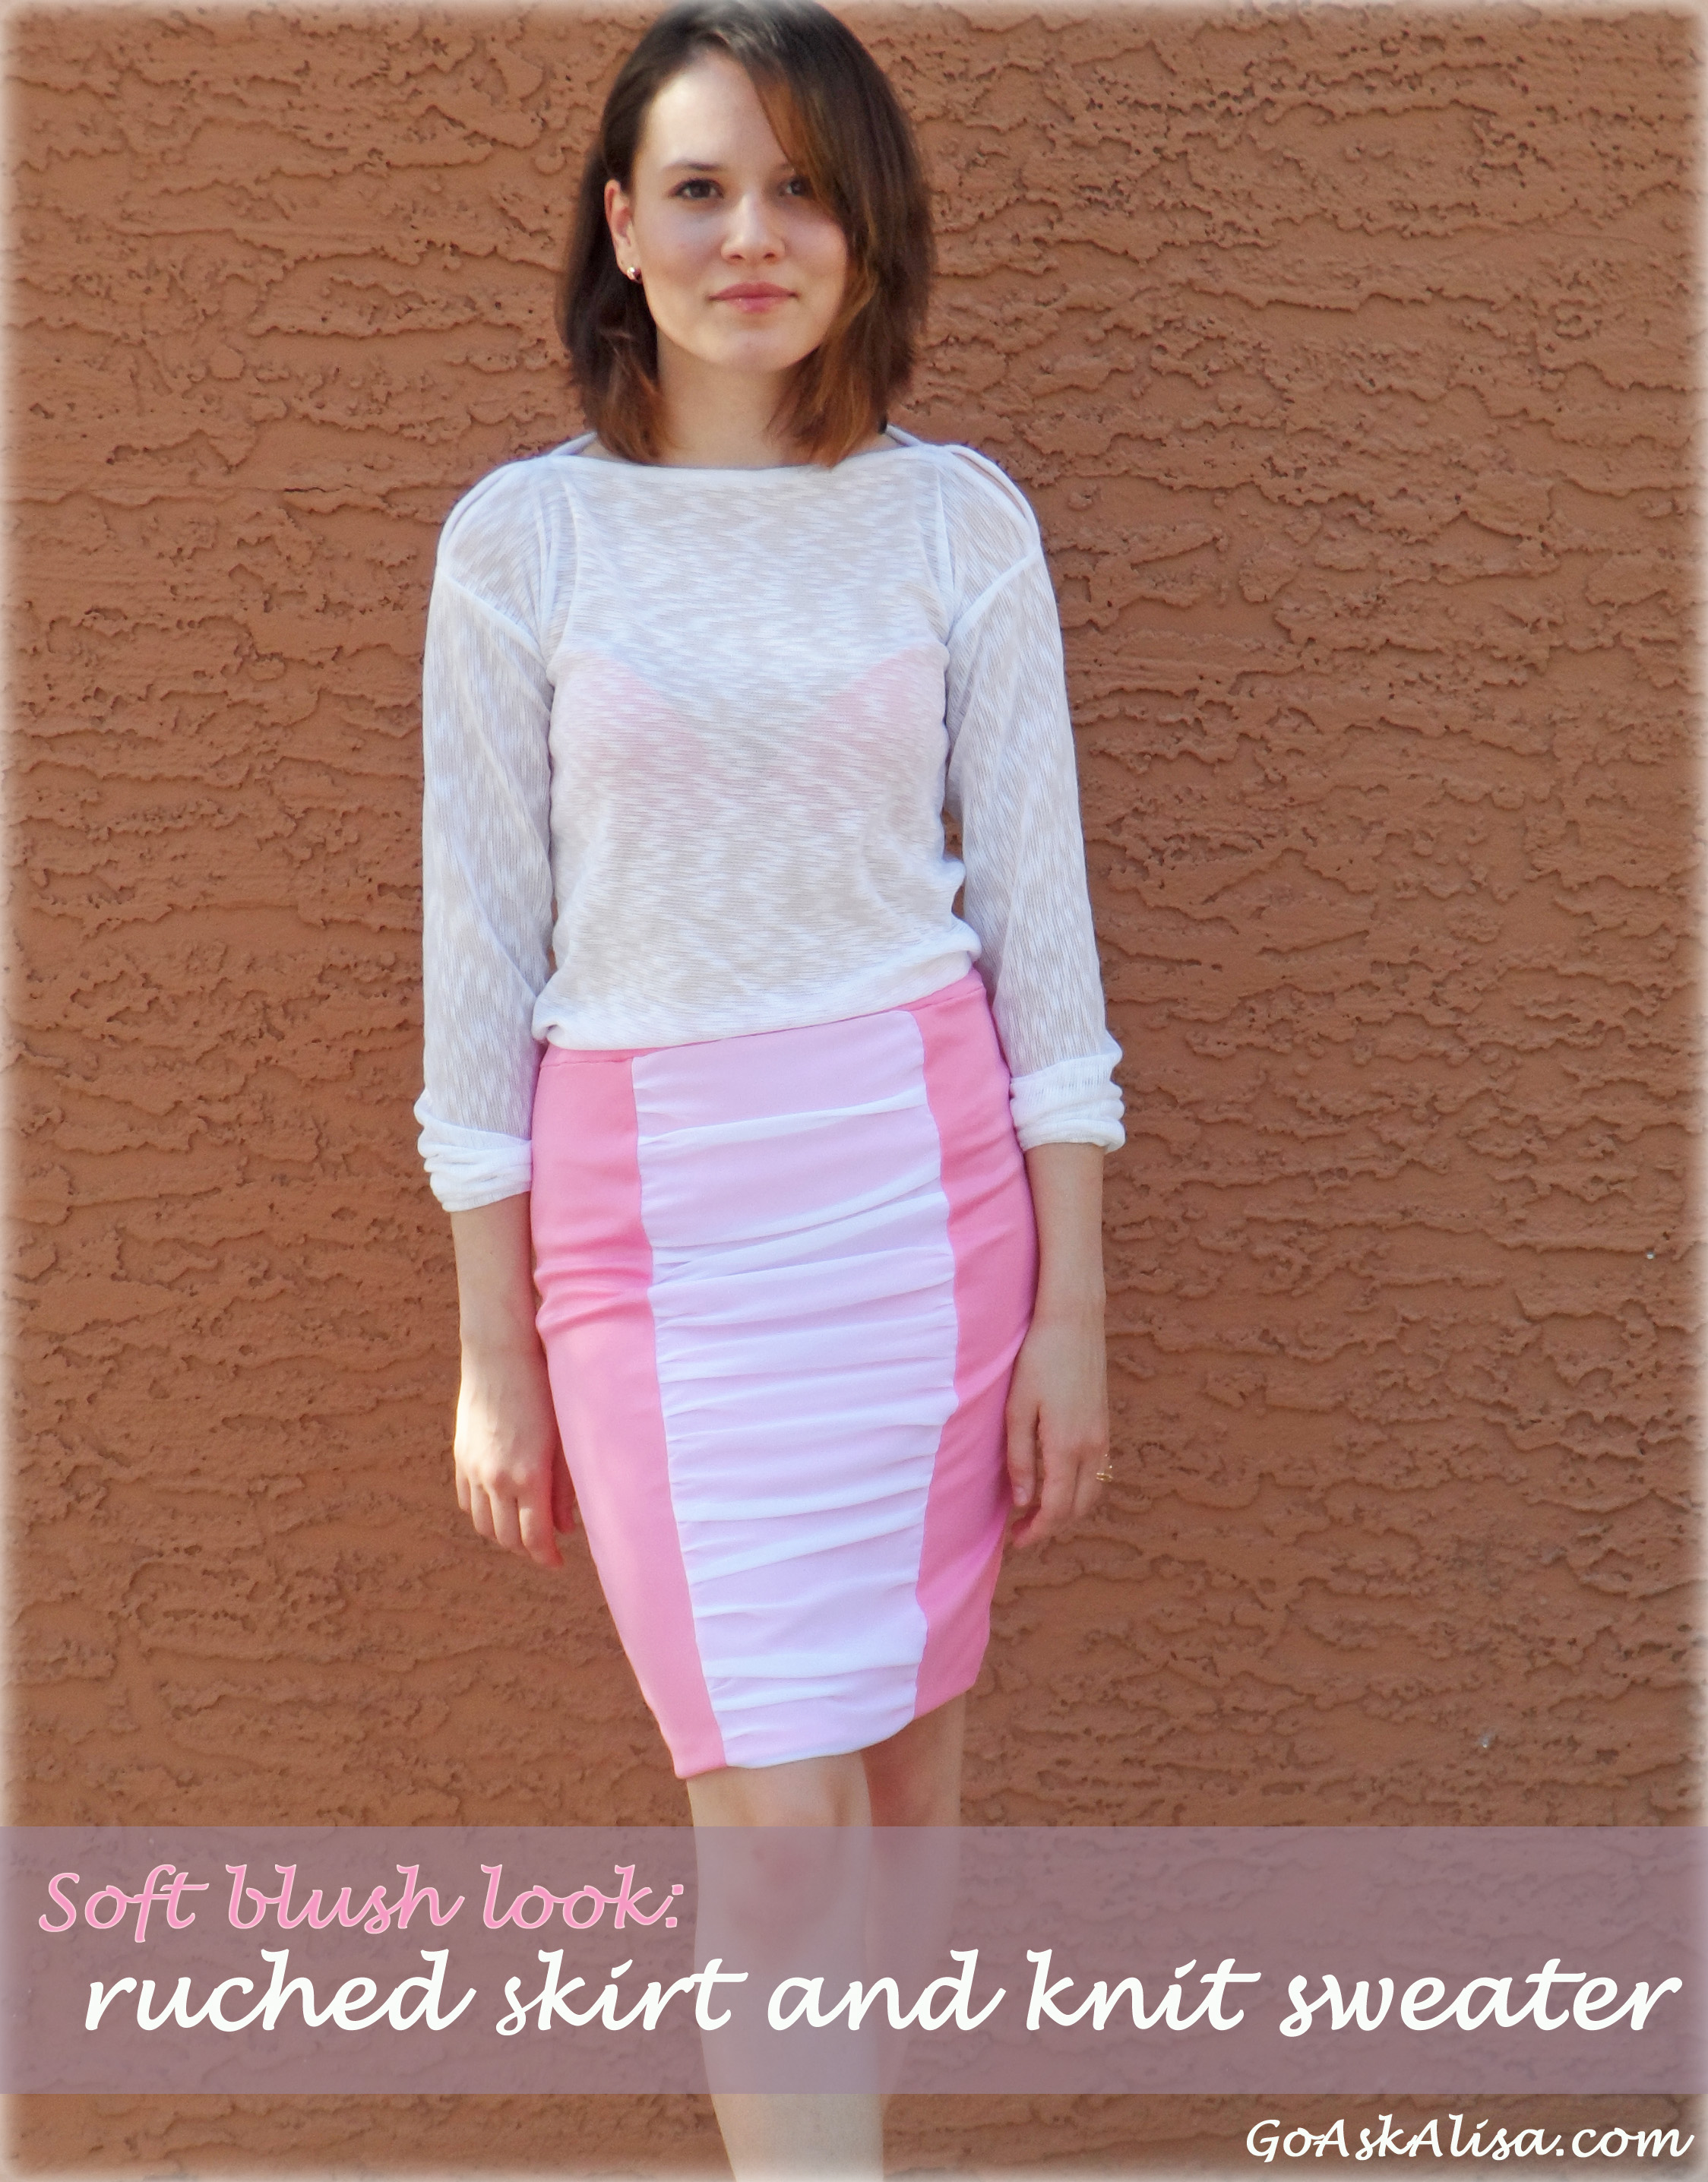 Soft blush look: sewing Burda\'s ruched skirt and knit sweater (with ...